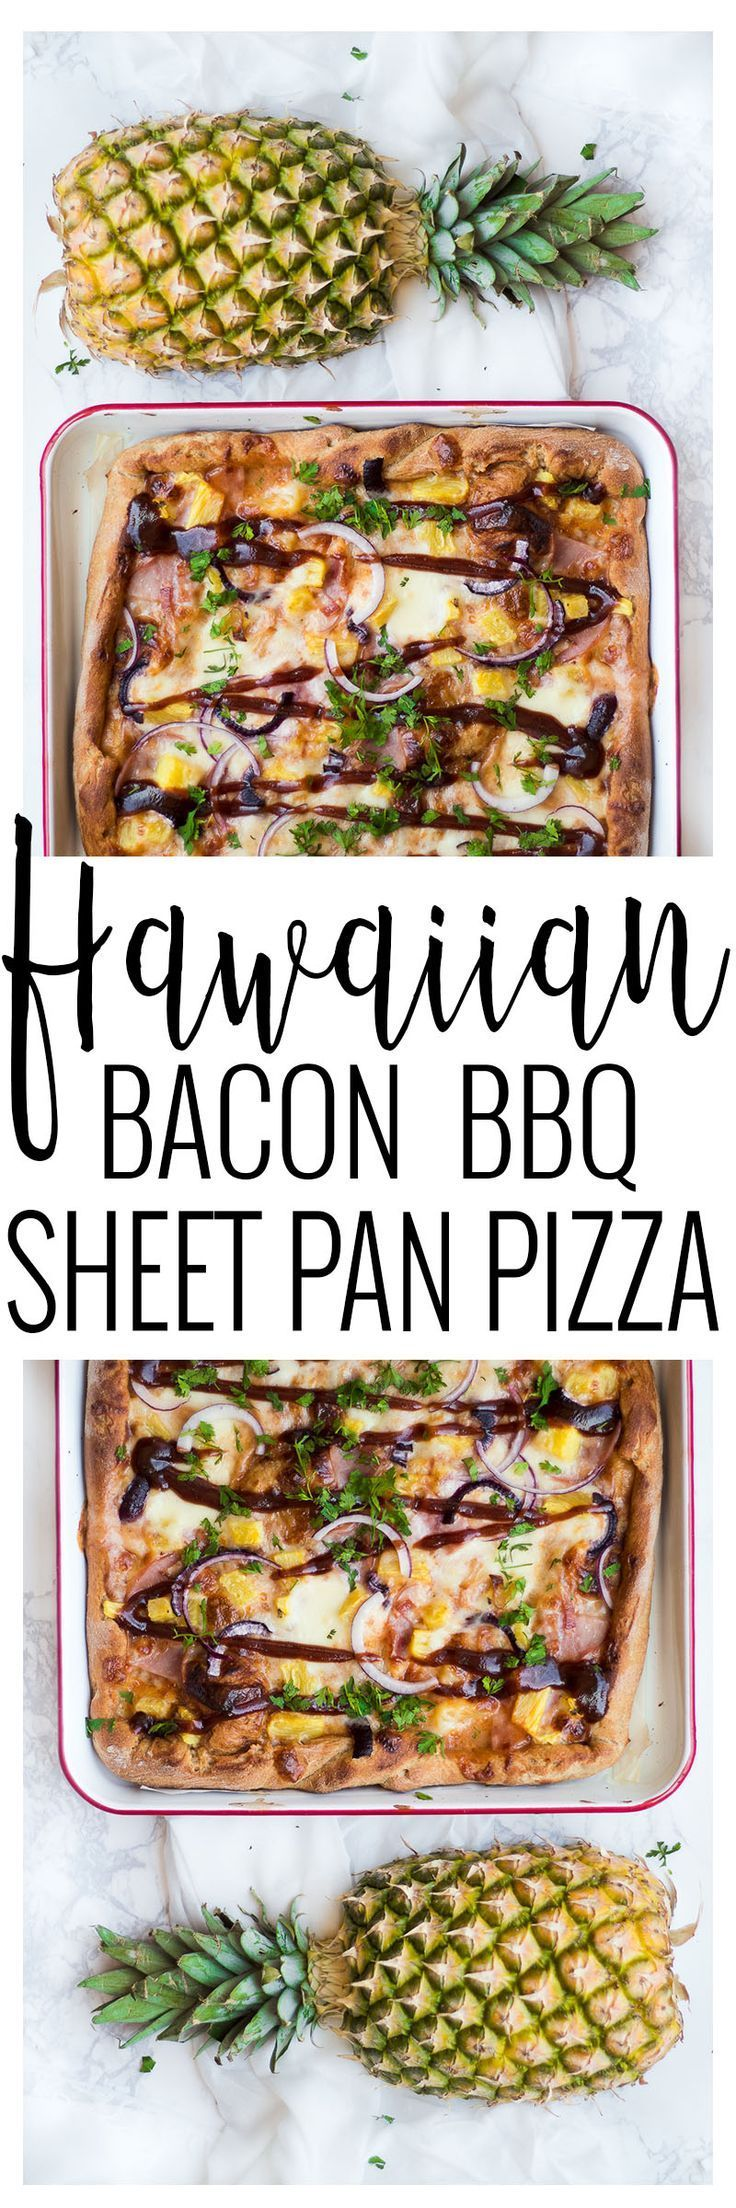 Hawaiian Bacon BBQ Pizza | easy pizza recipes | hawaiian pizza recipes | one pan meal ideas | easy clean up meals | quick dinner recipes | easy dinner recipes | summer dinner recipes | easy sheet pan meals | hawaiian themed recipes | homemade pizza recipe